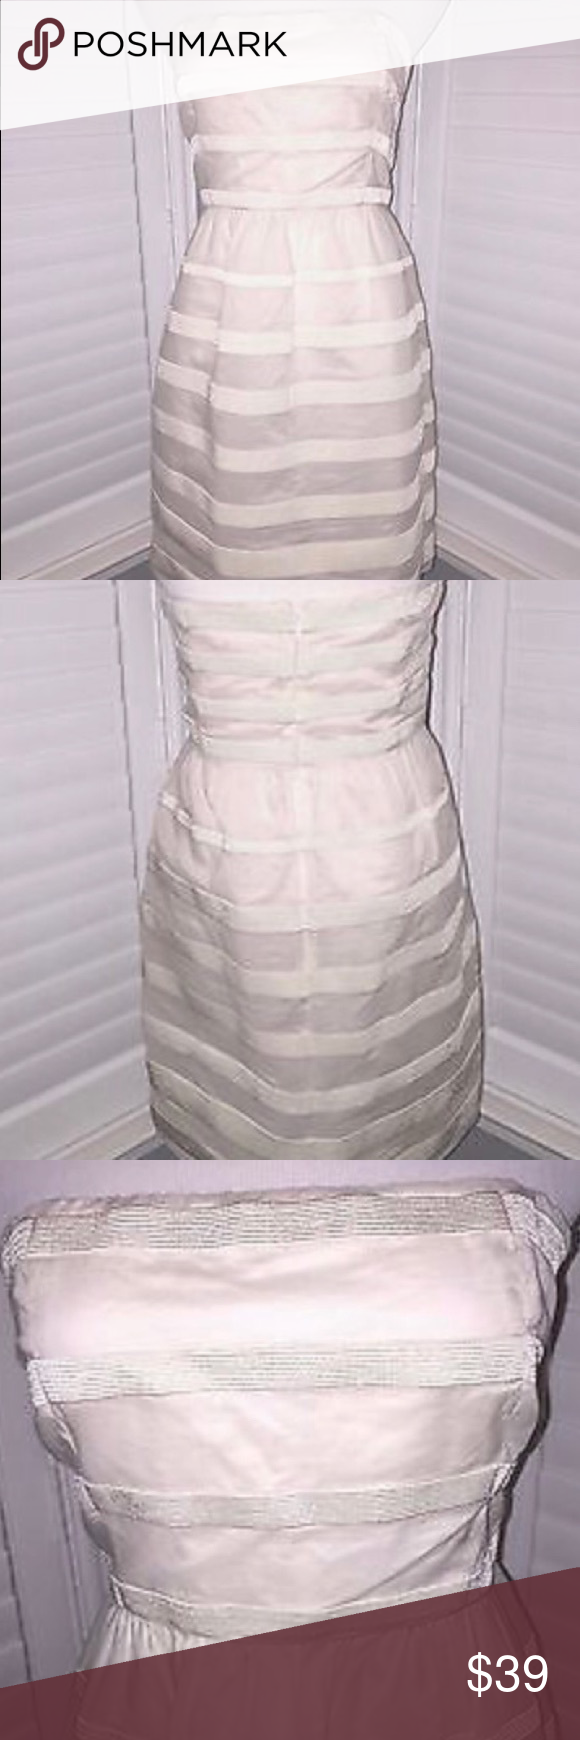 NWT J CREW Cream Striped Strapless Dress Sz 10 NWT $128 J CREW Gorgeous Cream Striped Strapless Fully Lined Dress Size 10This is such a great J Crew fully lined strapless dress that is NWT! It has two side, slip pockets and an invisible back zipper. It is strapless with silicone band at the top and boning along with an elastic bra type strap on the inside. The stunning fabric is sheer with ribbed ribbon in graduated widths from the top to the bottom. Don't miss out on this fabulous dress! J…